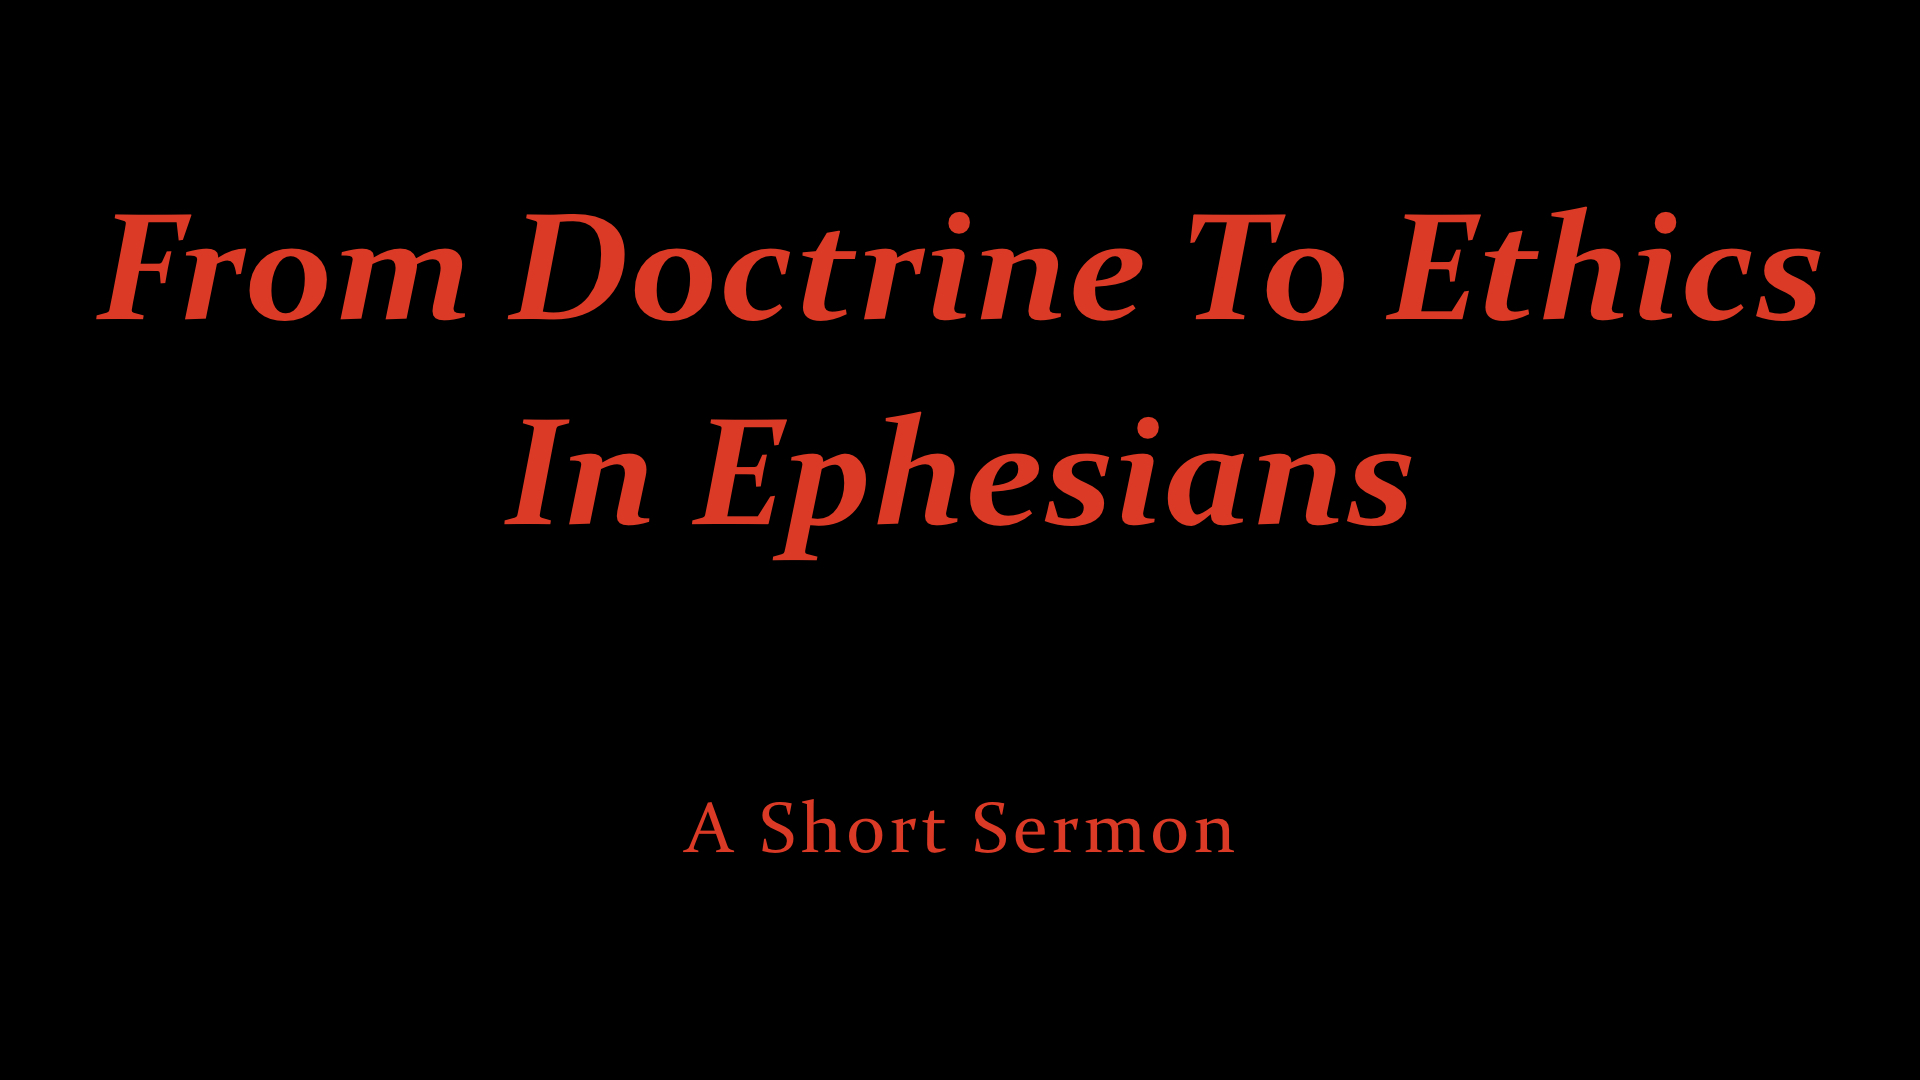 From Doctrine To Ethics In Ephesians - A Short Sermon.jpeg